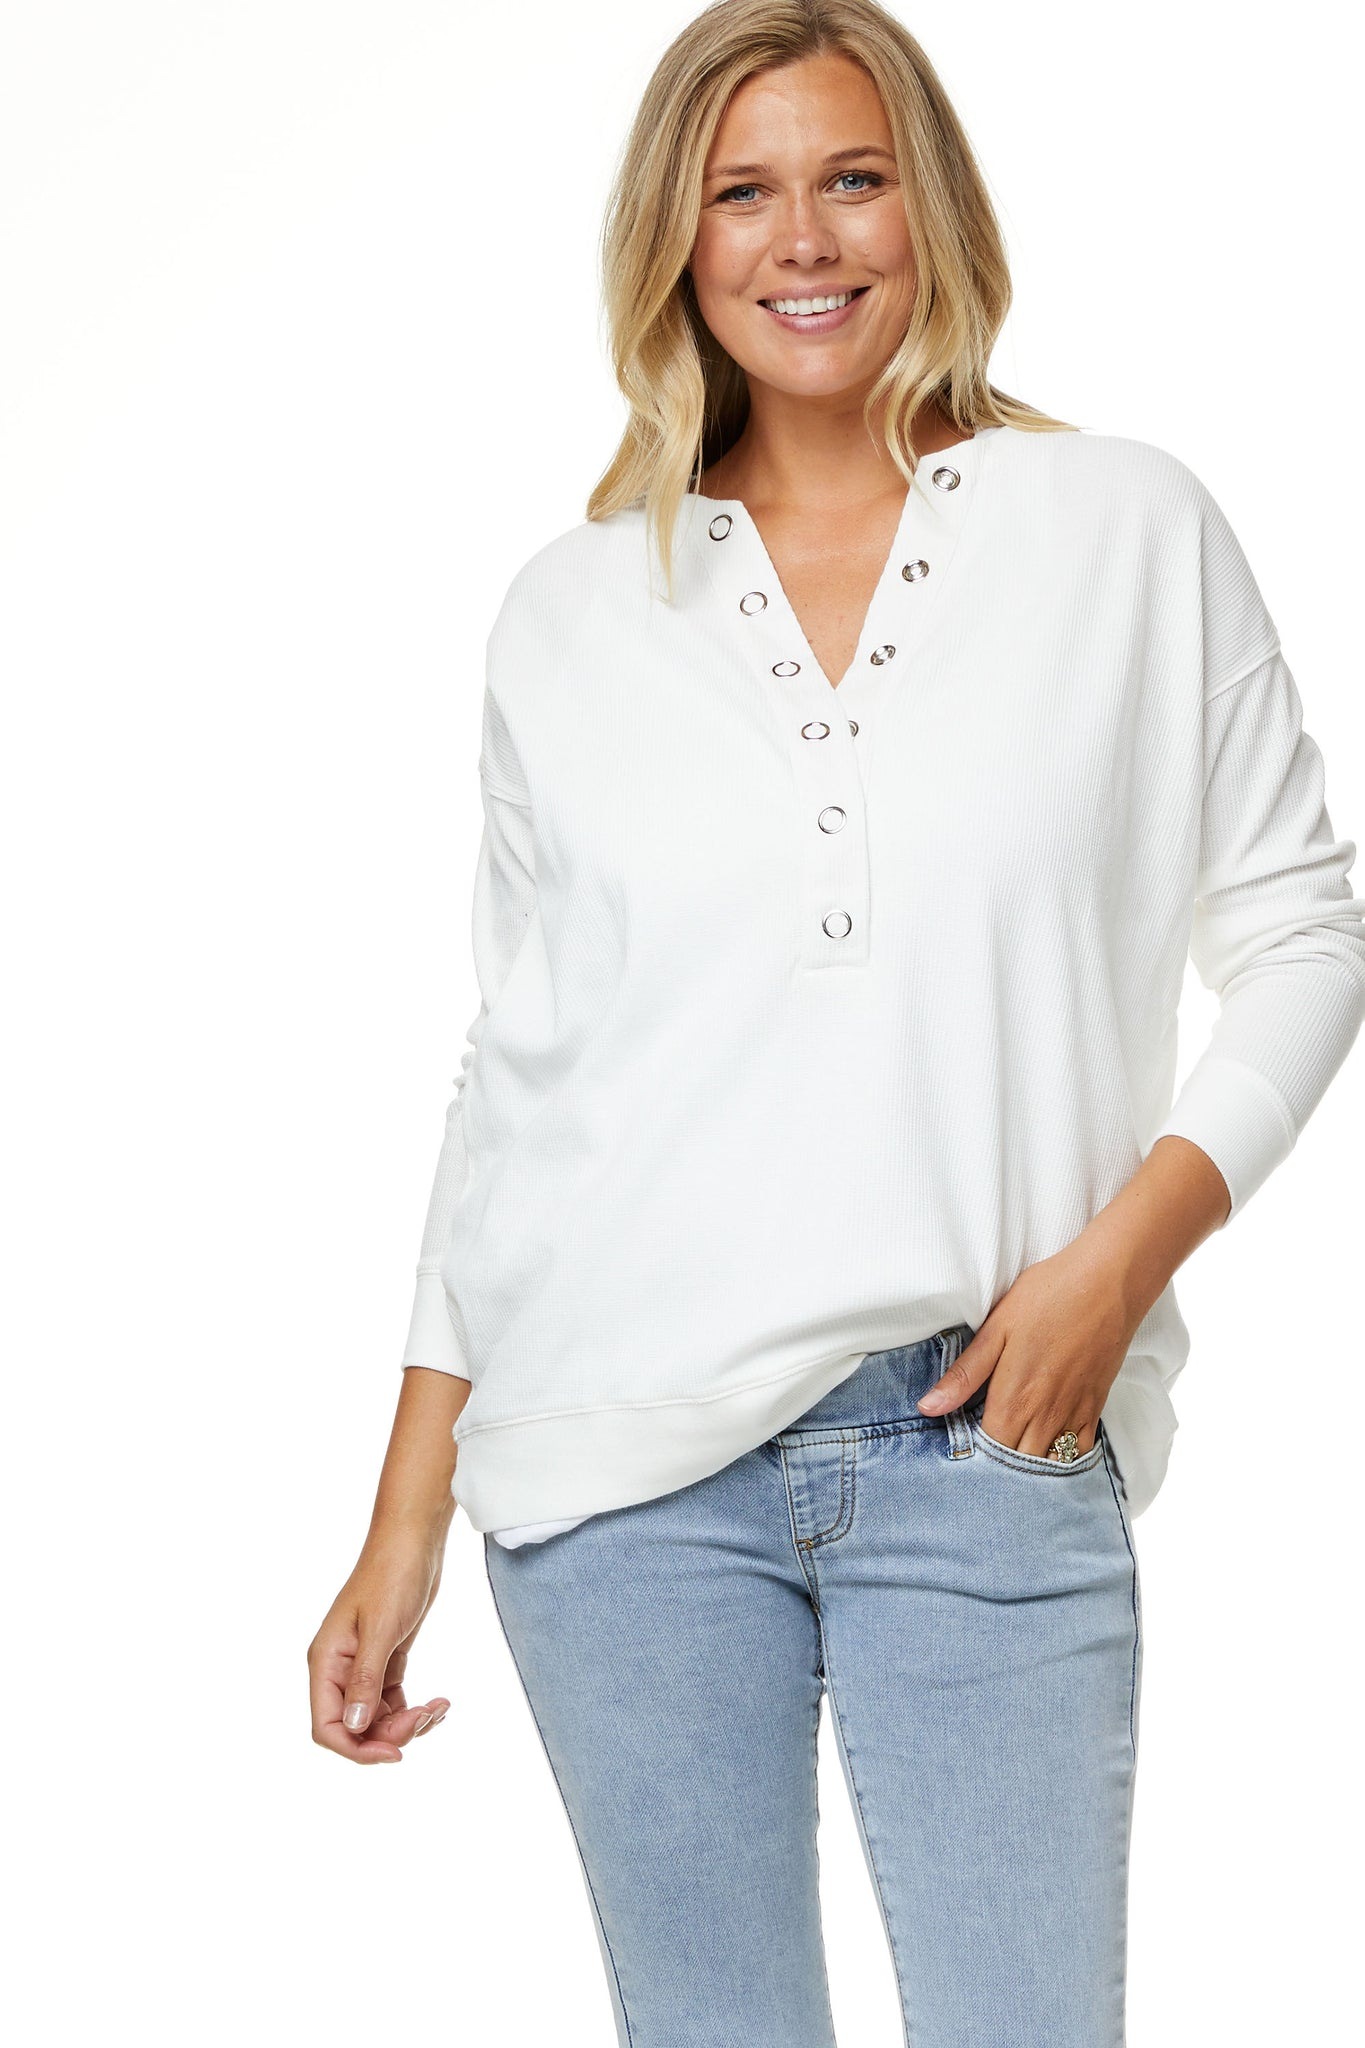 Maternity and Nursing Top white Image 6